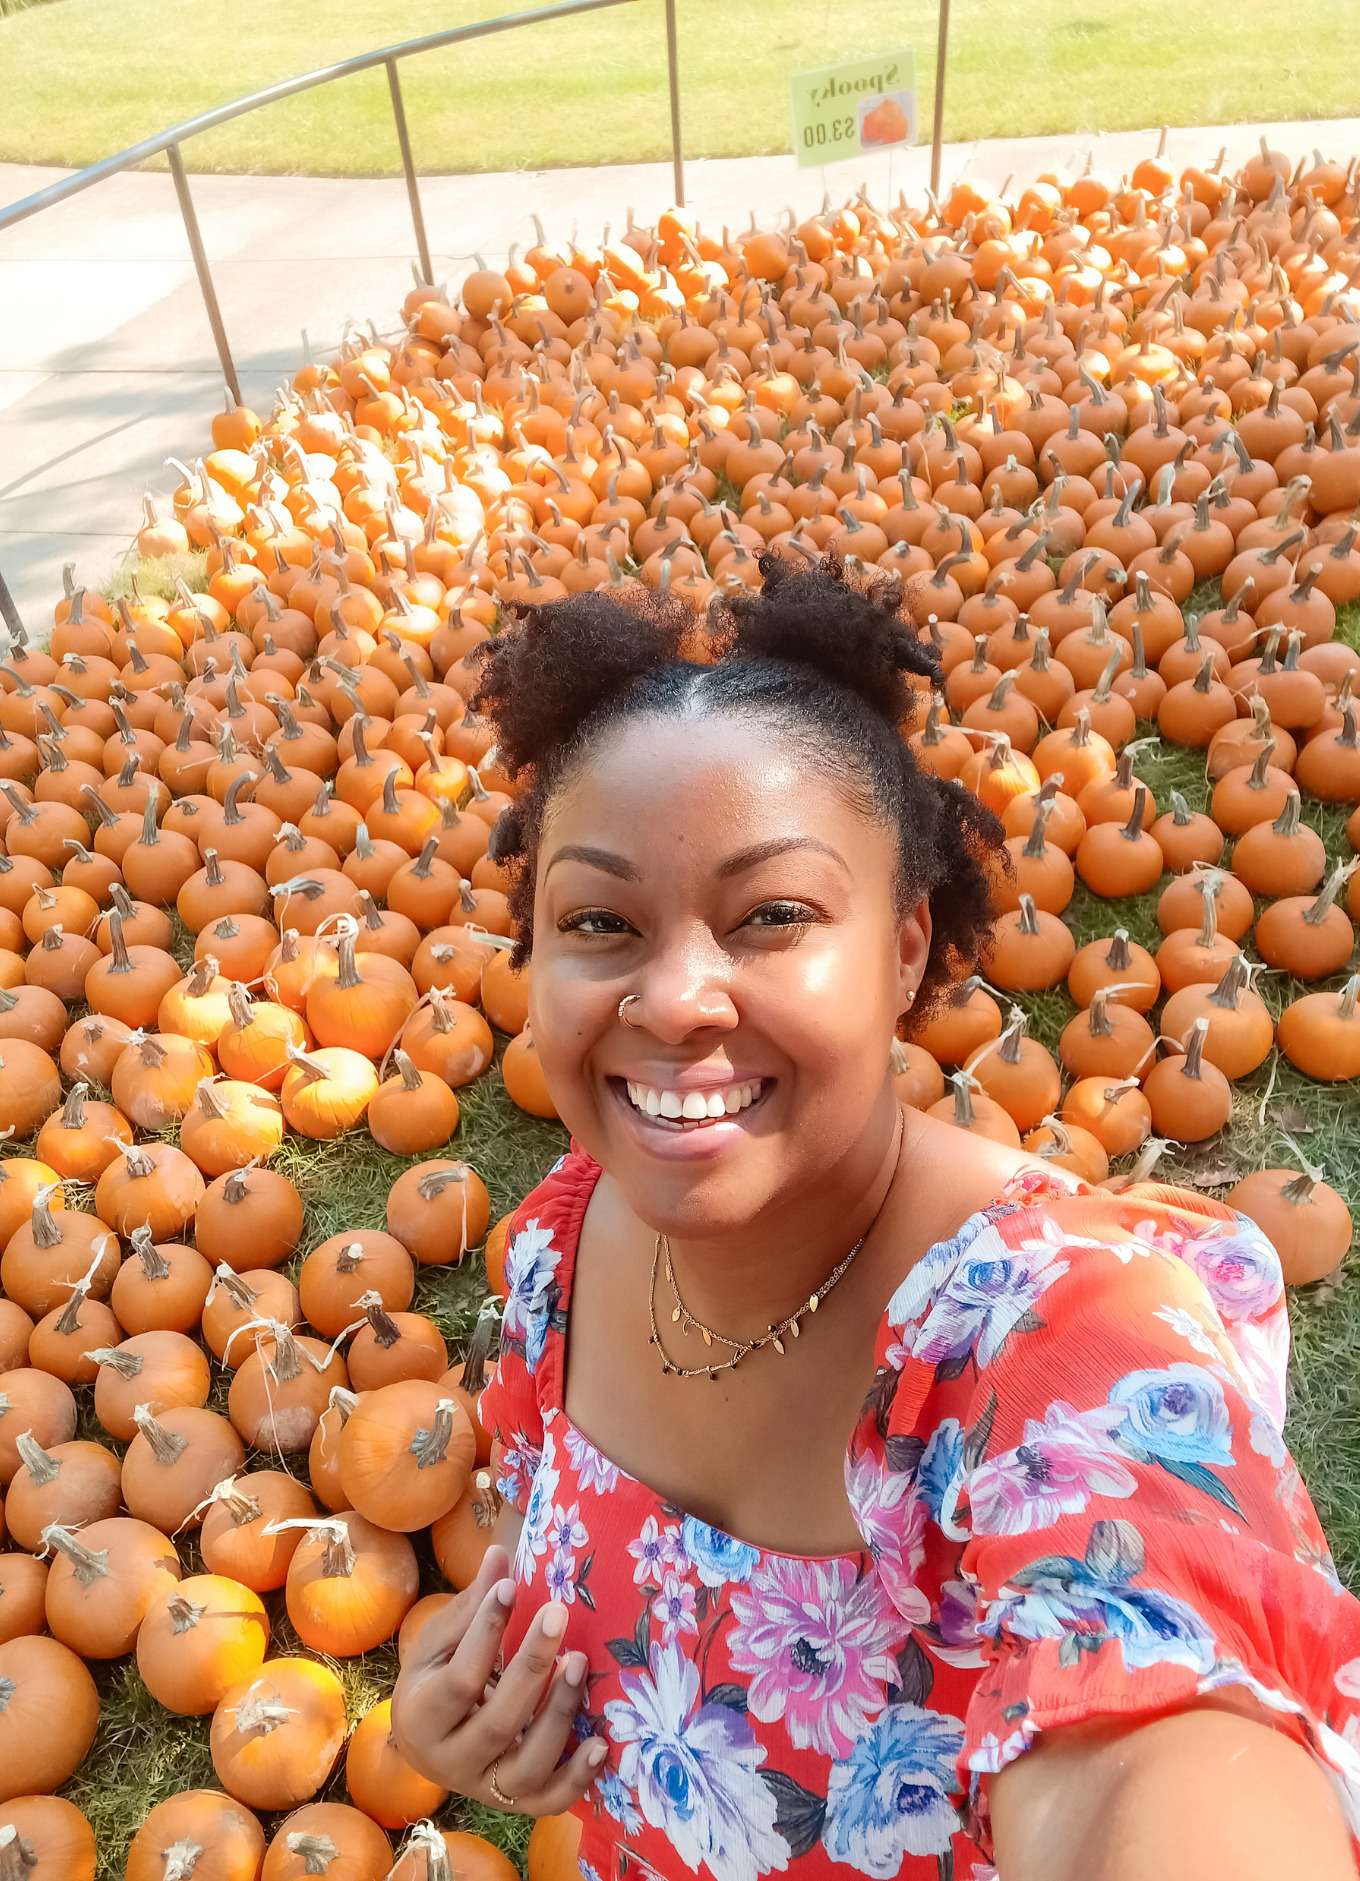 This Bahamian Gyal blogger, Rogan Smith poses in front of dozens of pumpkins